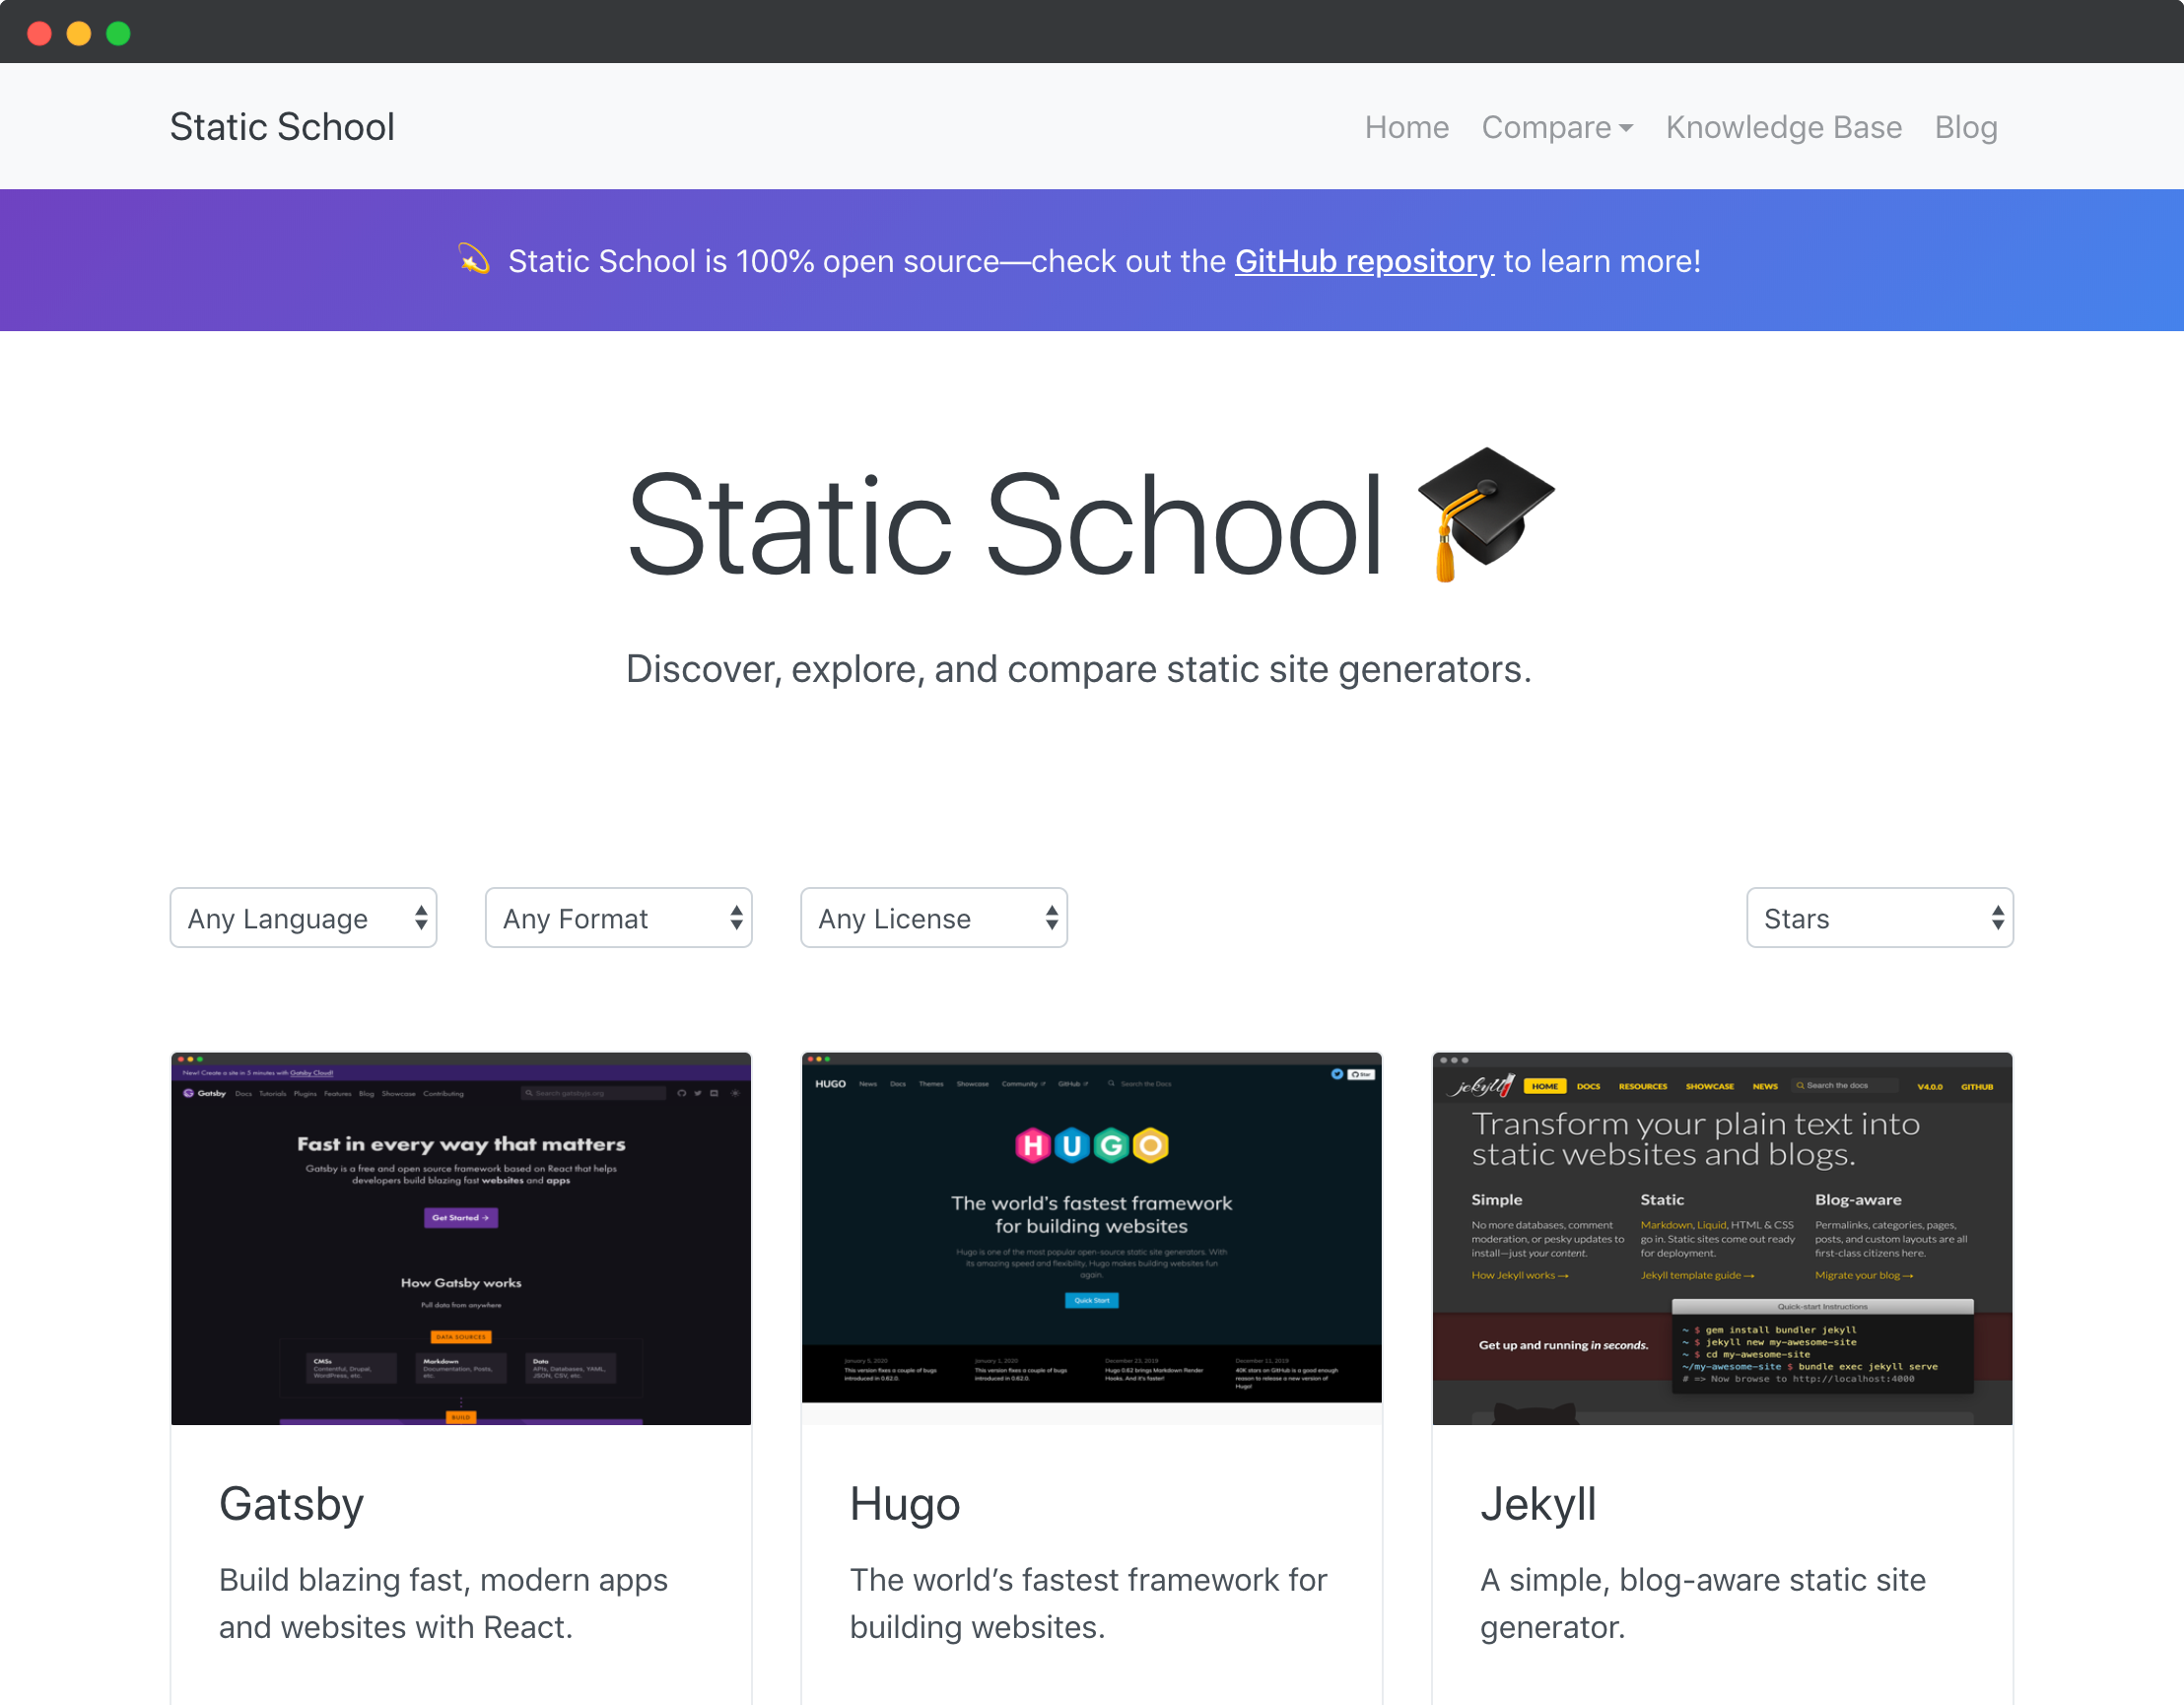 An image of Static School's homepage